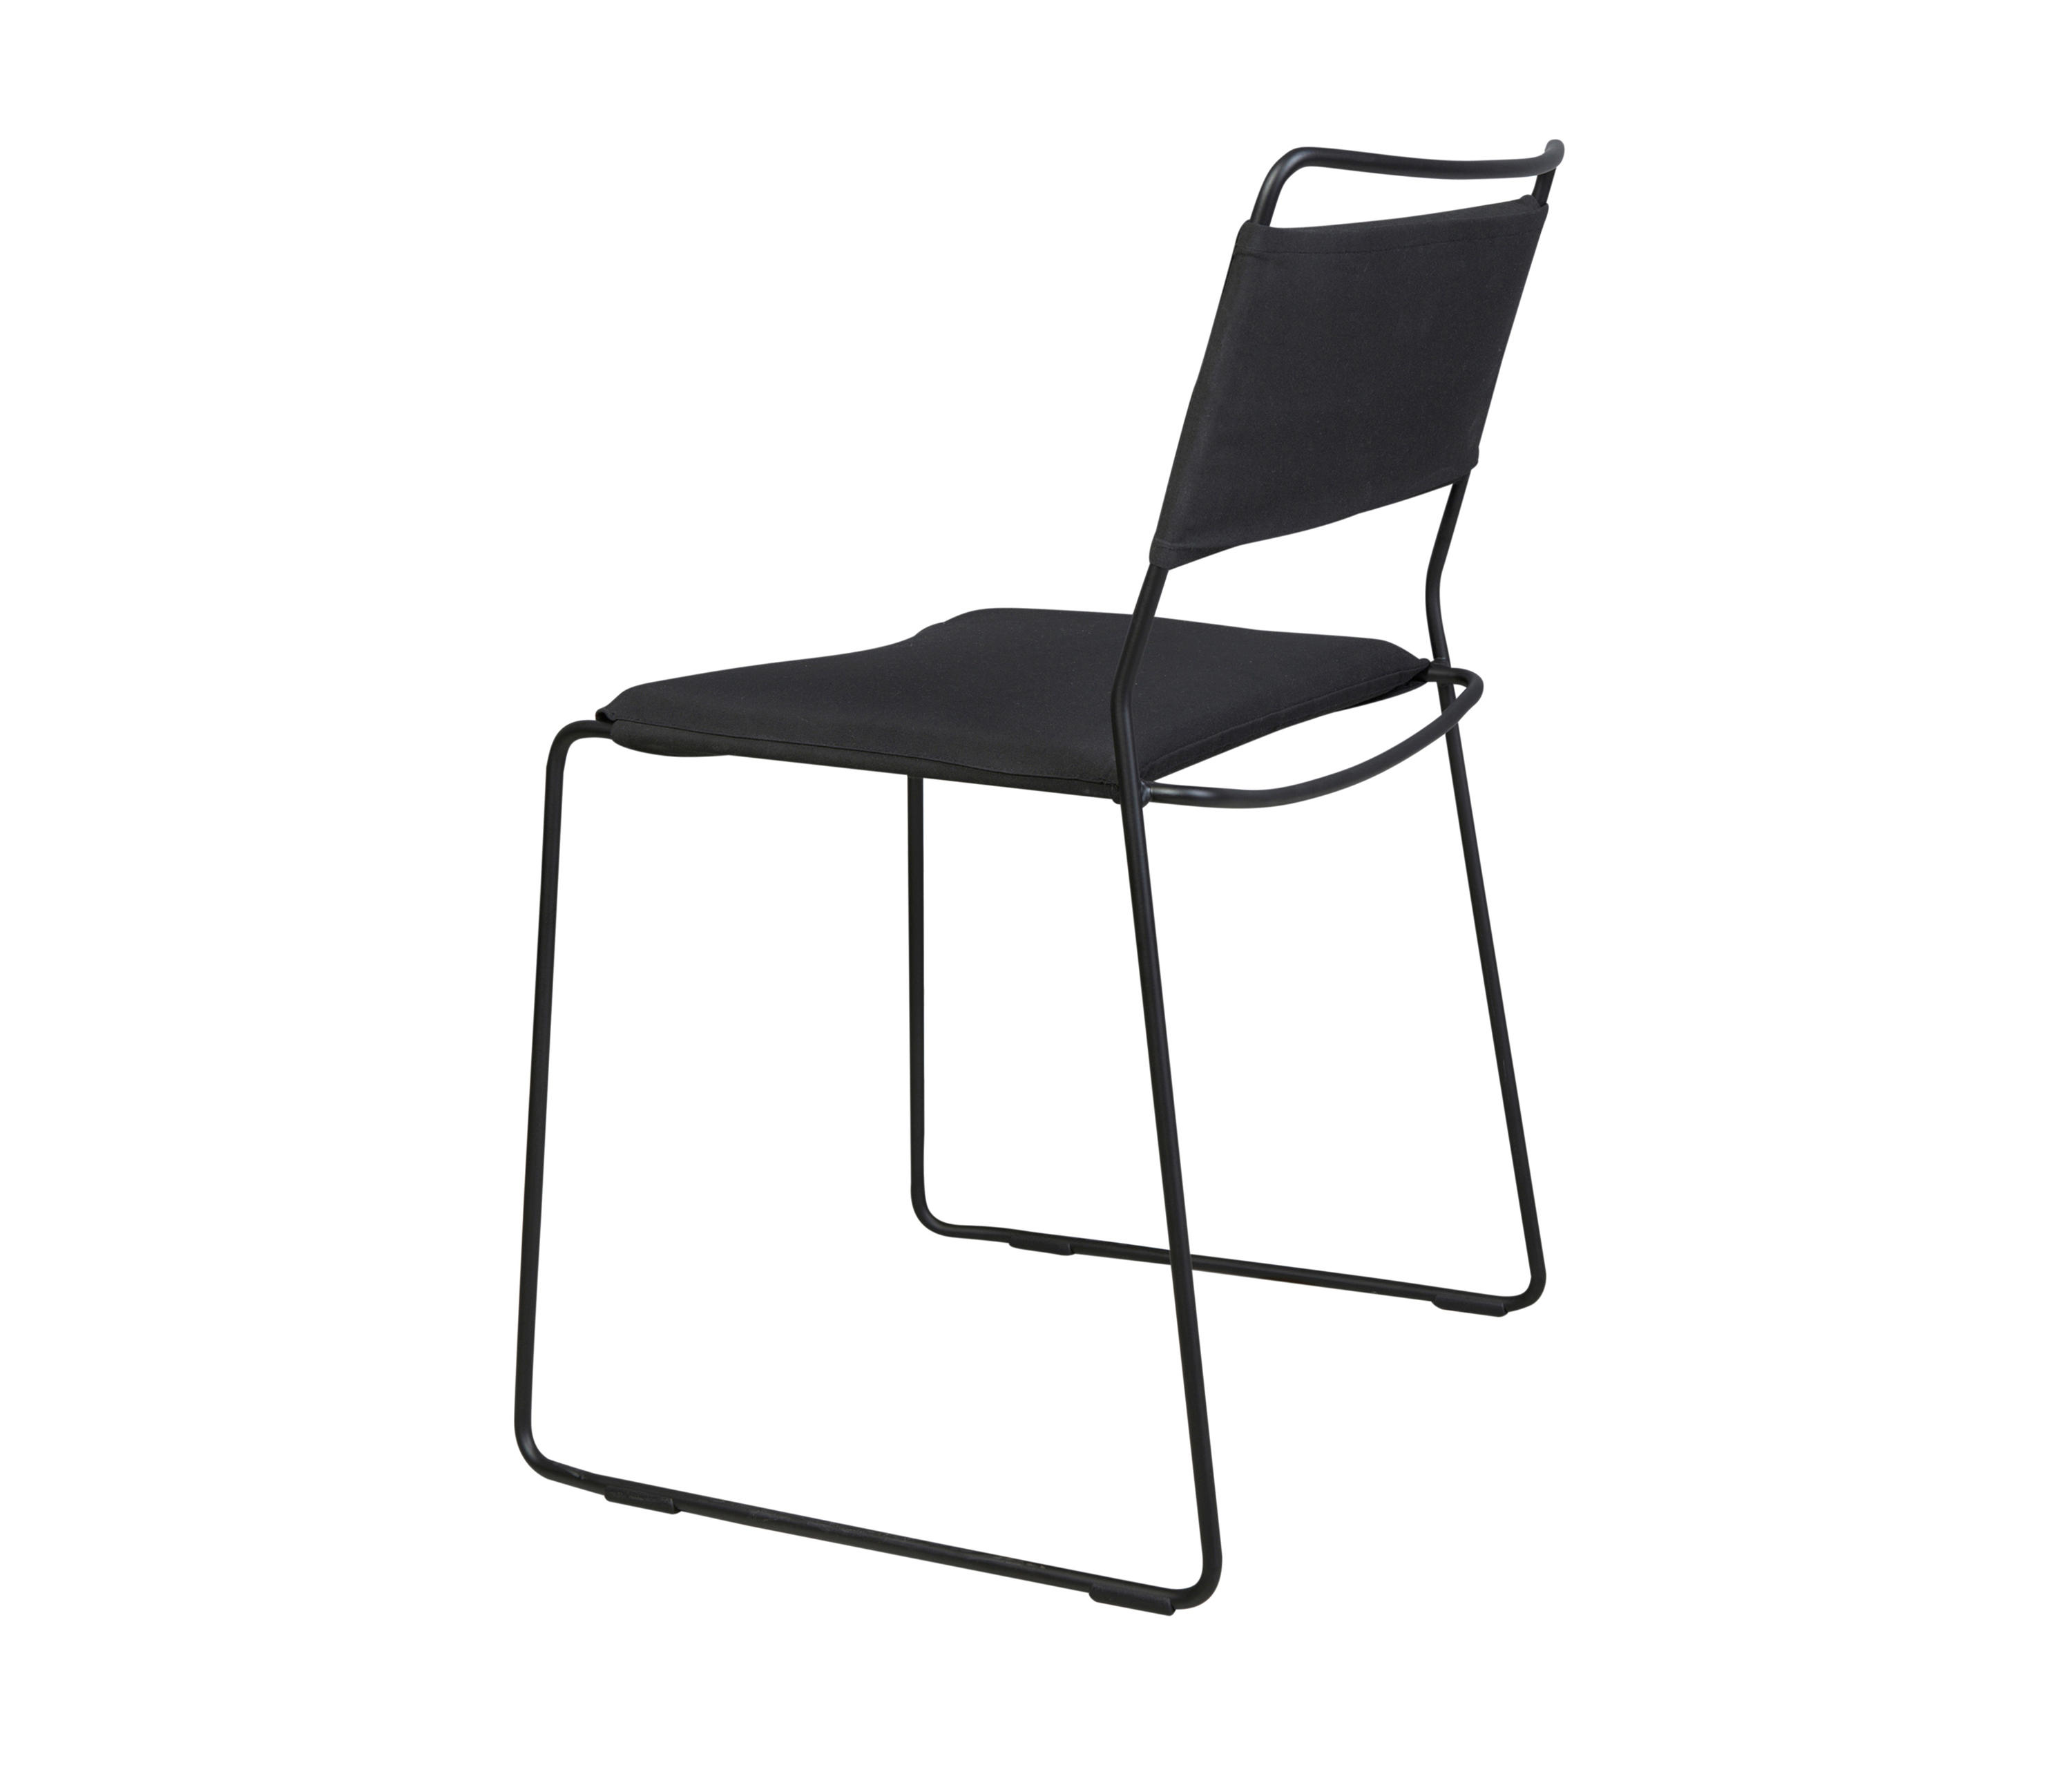 ... One Wire Chair By OK Design | Chairs ...